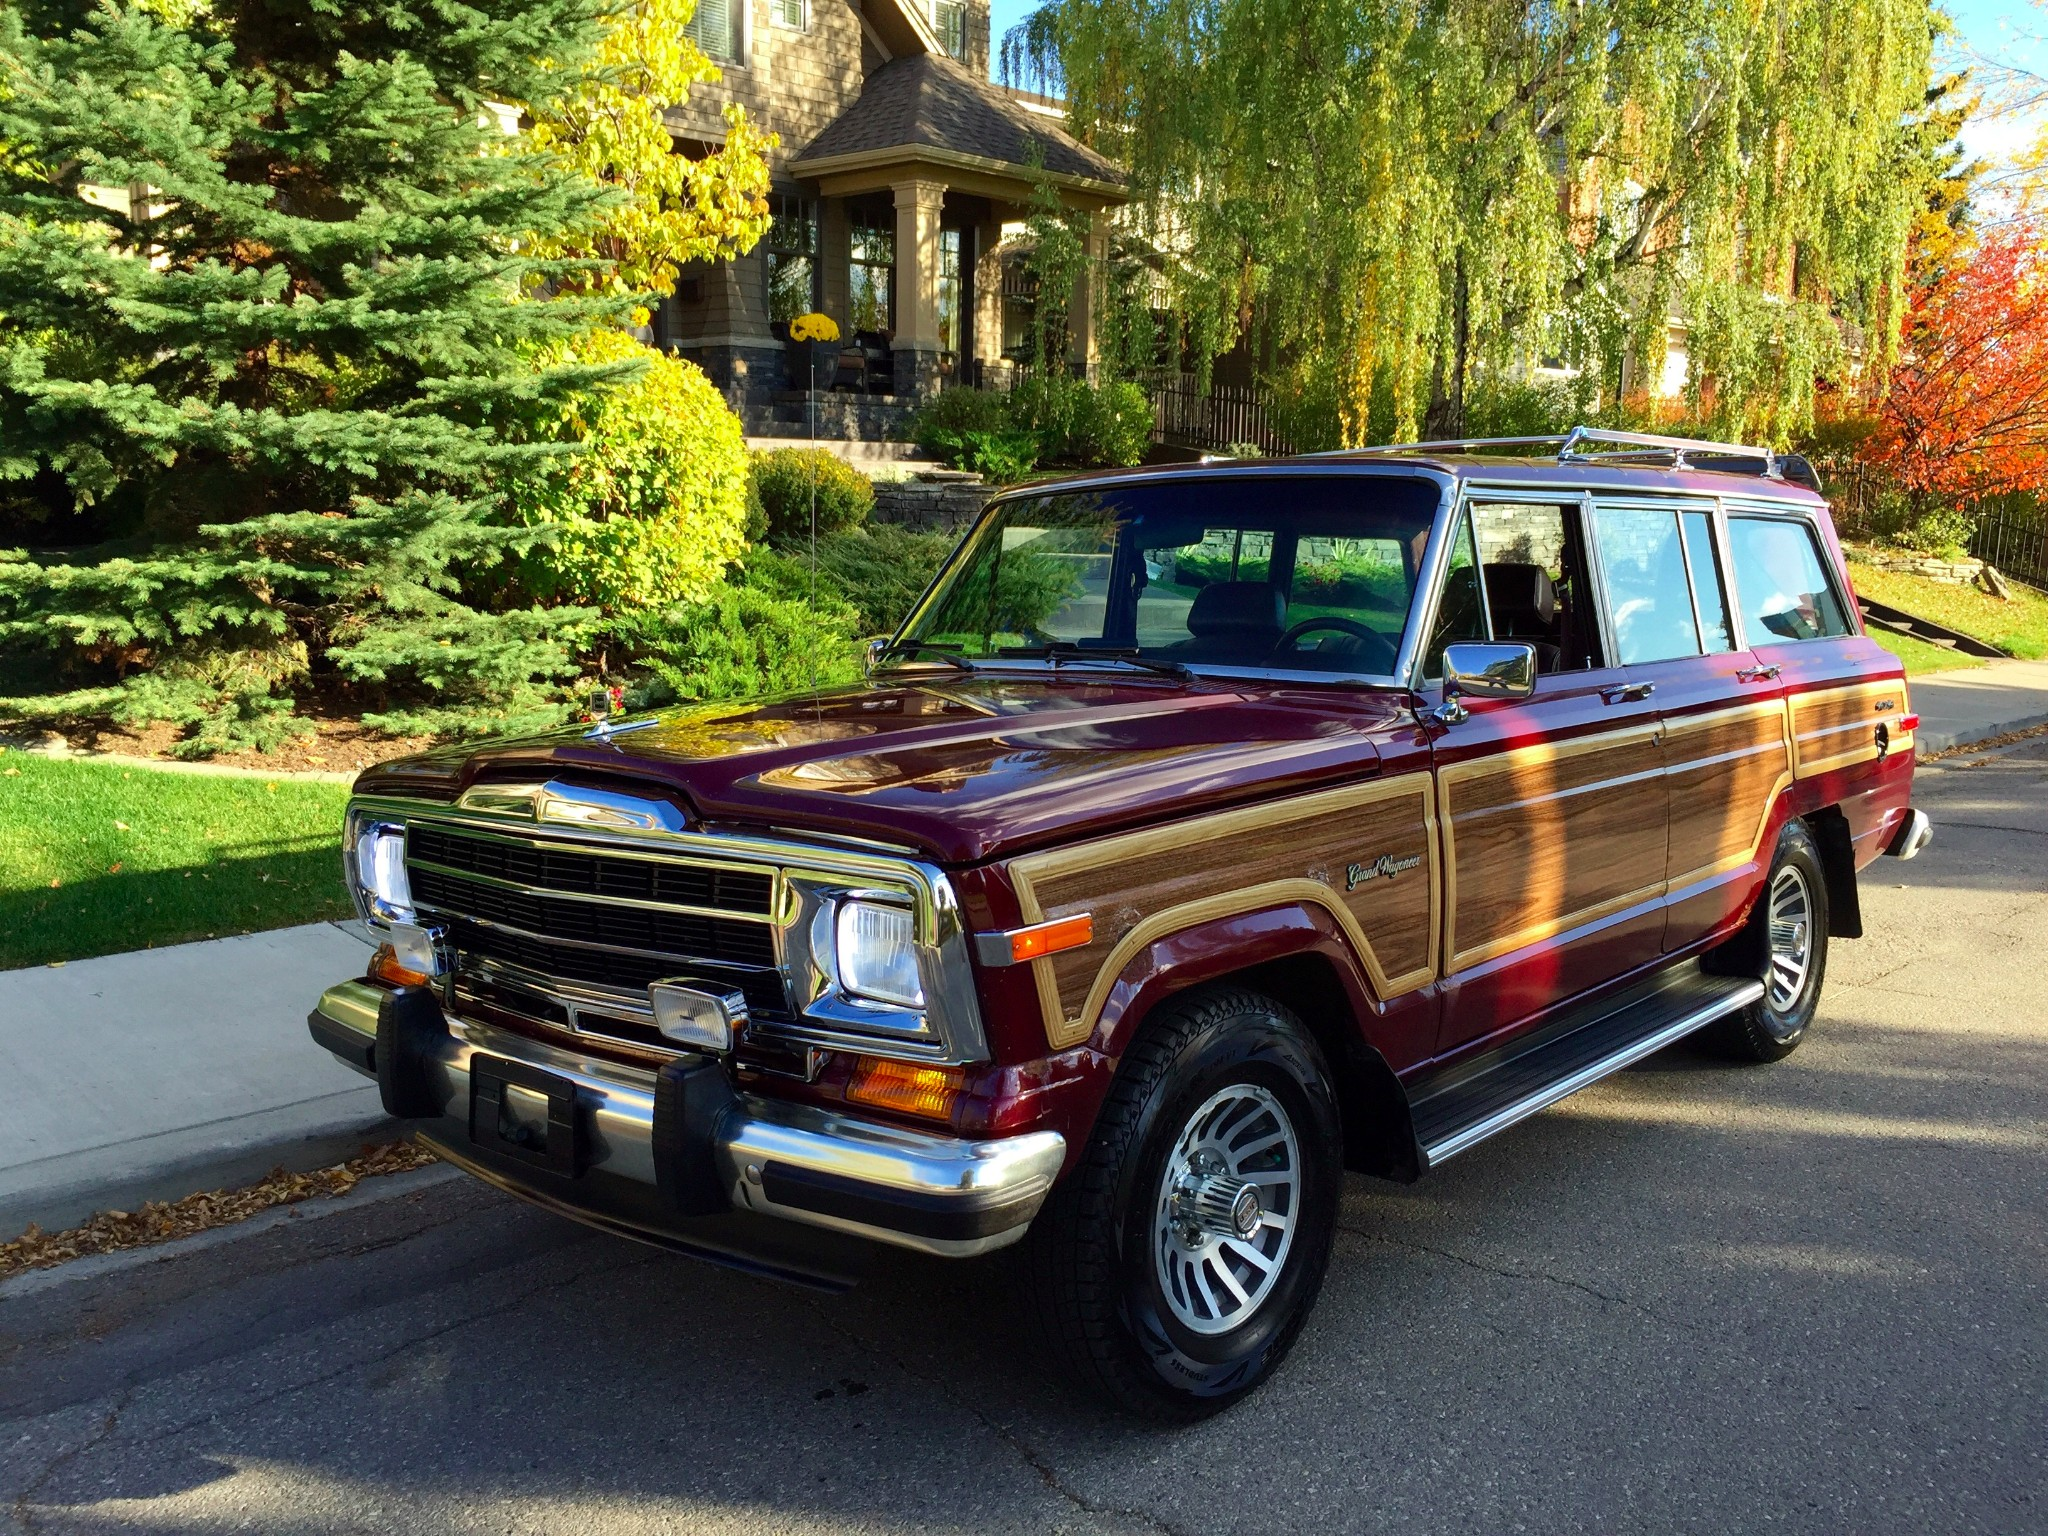 1991 Jeep Sj Grand Wagoneer Is Up For Grabs On Bring A